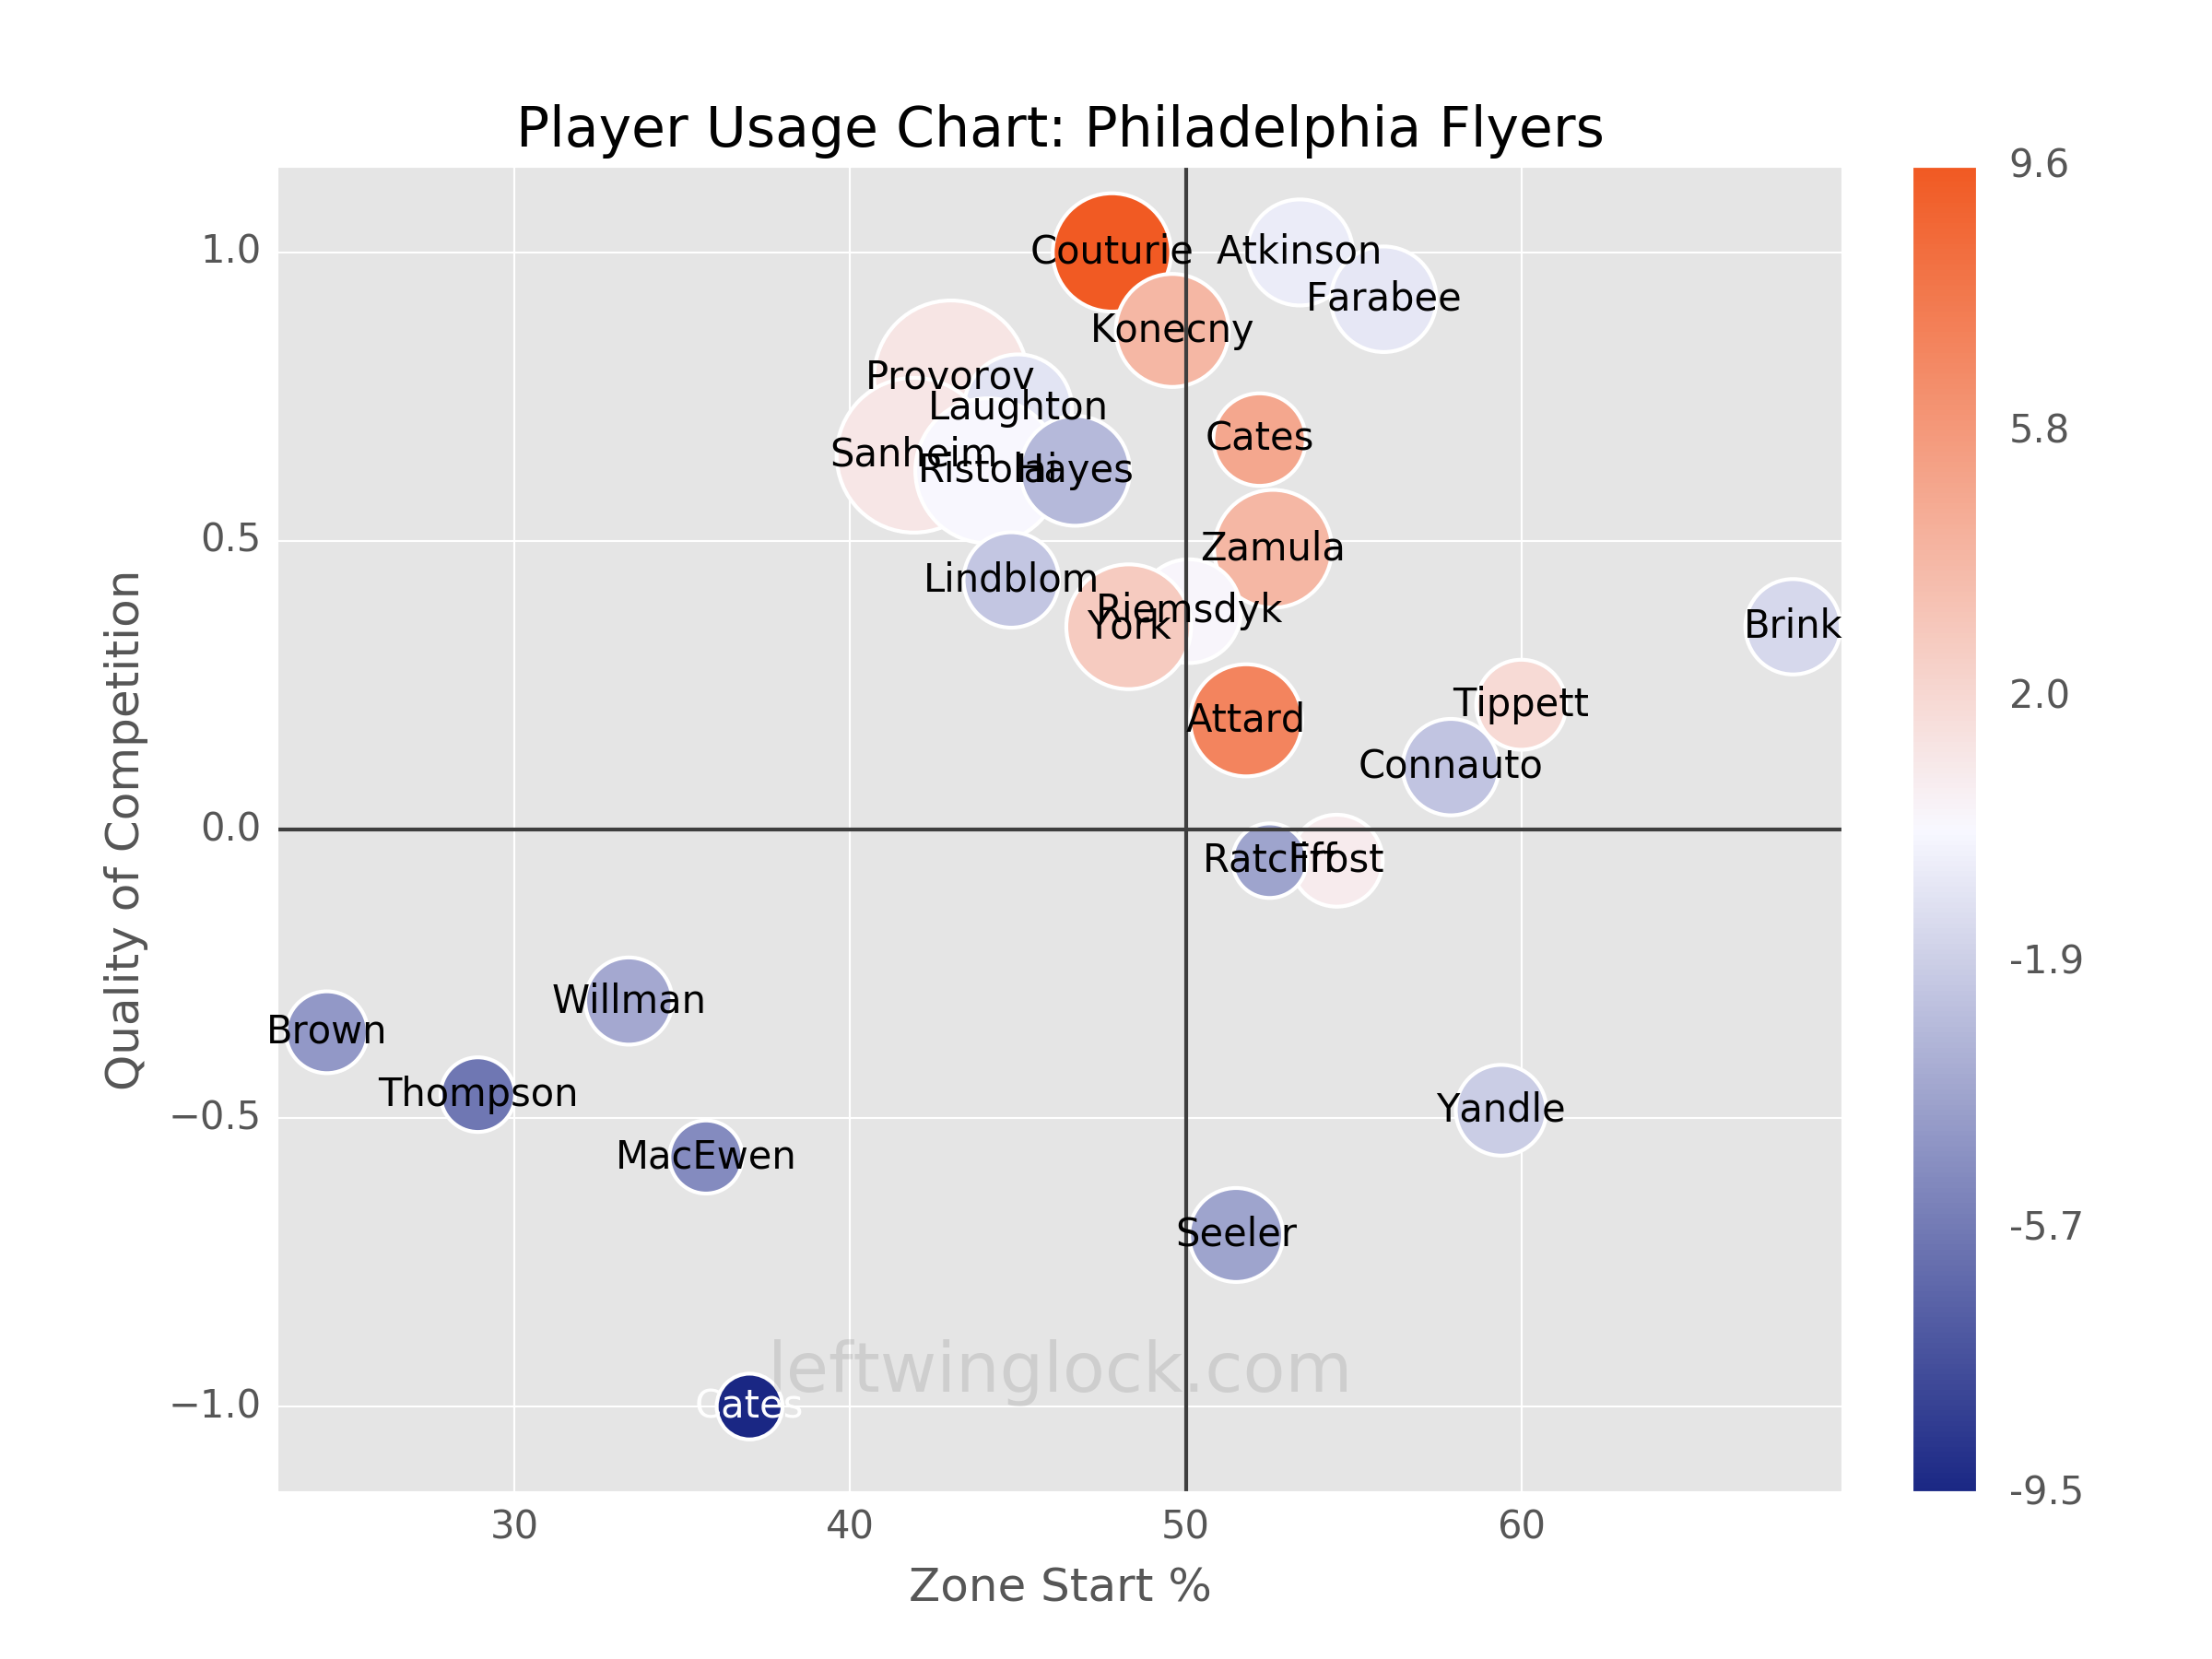 Philadelphia Flyers Player Usage Chart